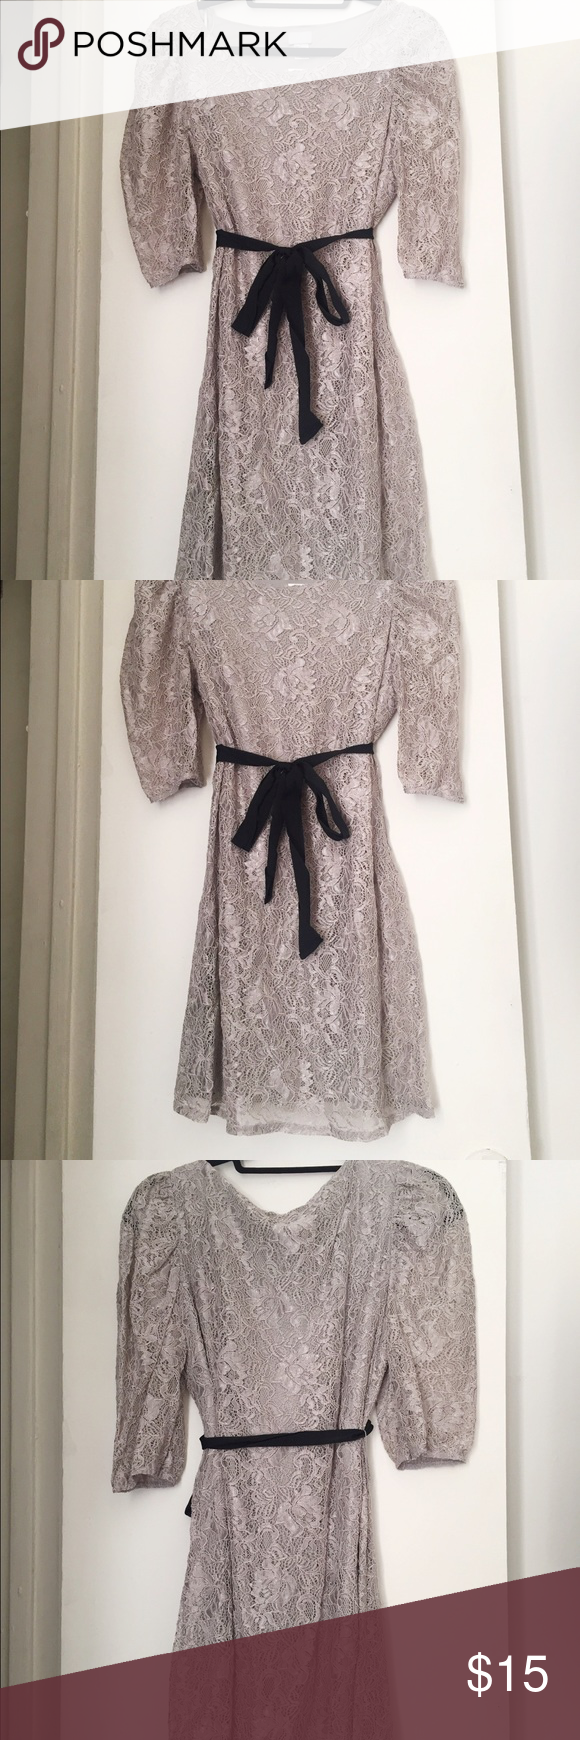 Grey lace long sleeve dress Beautiful grey lace H&M dress. All-over lace with 3/4 length sleeves. Black ribbon belt included, can wear with or without it. Hits mid-thigh - length is 31 inches from neck to hem. Never worn, NWT. H&M Dresses Long Sleeve